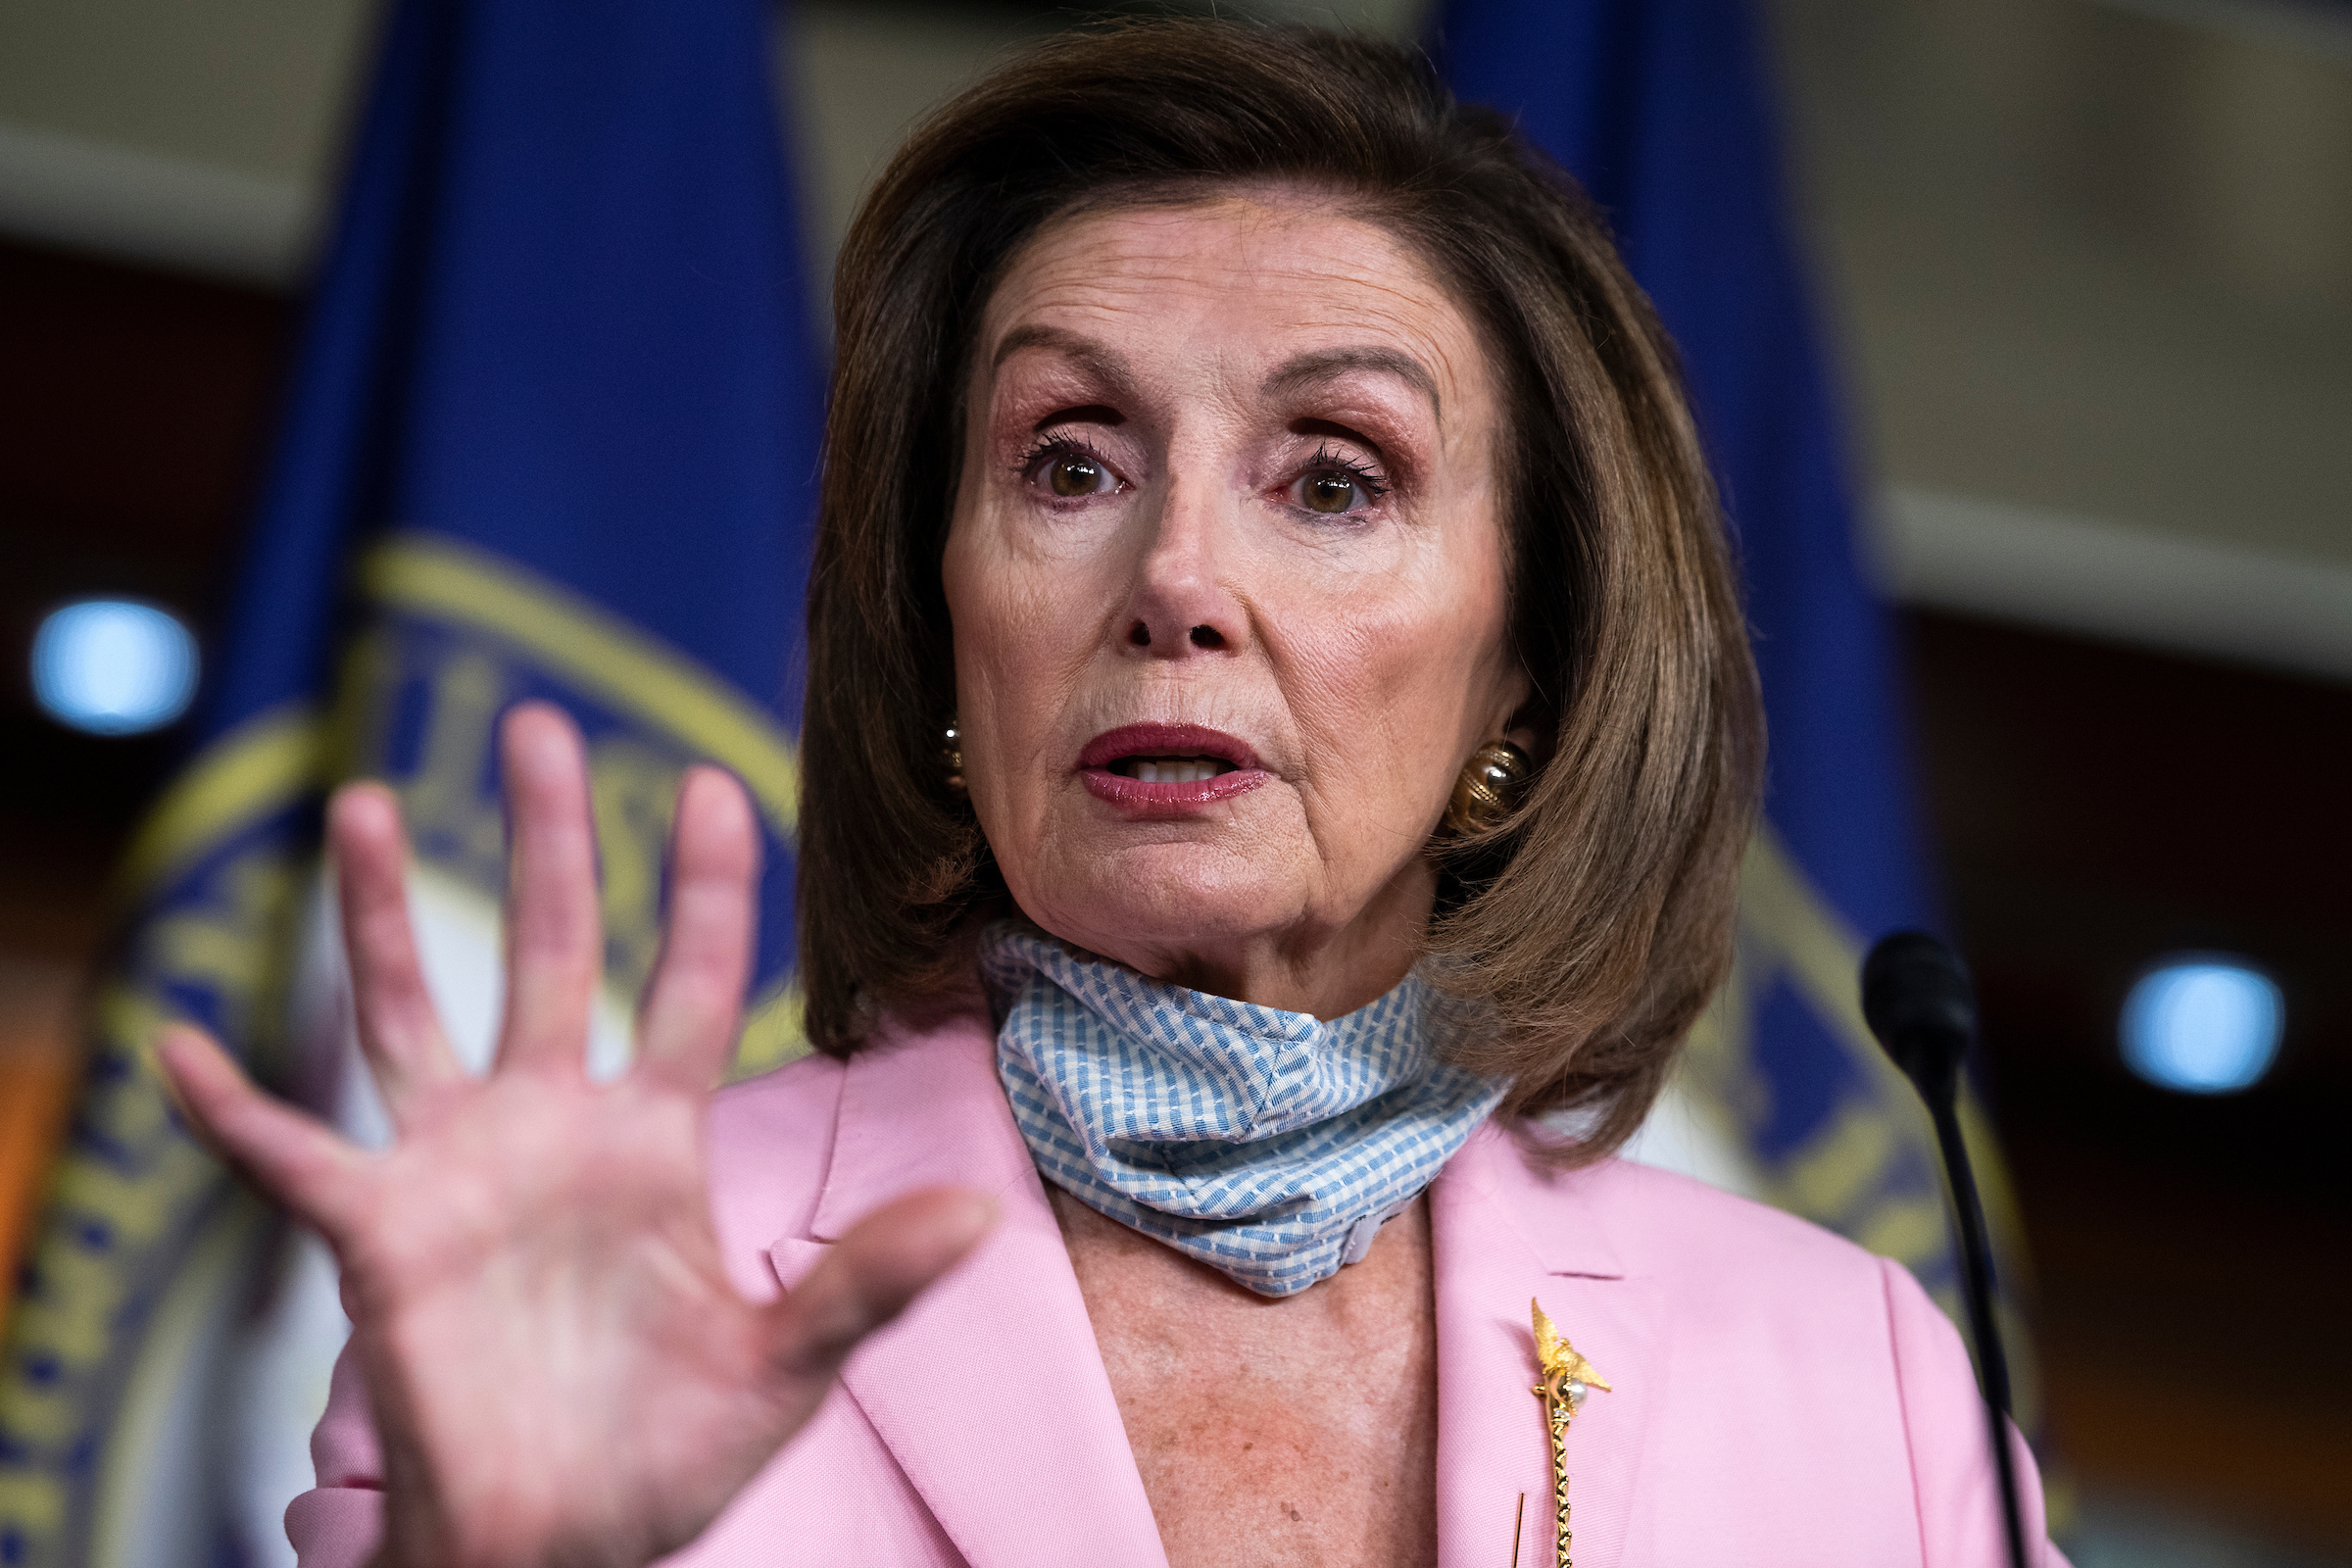 Pelosi pledges coordination with Senate on $3.5T budget package - Roll Call